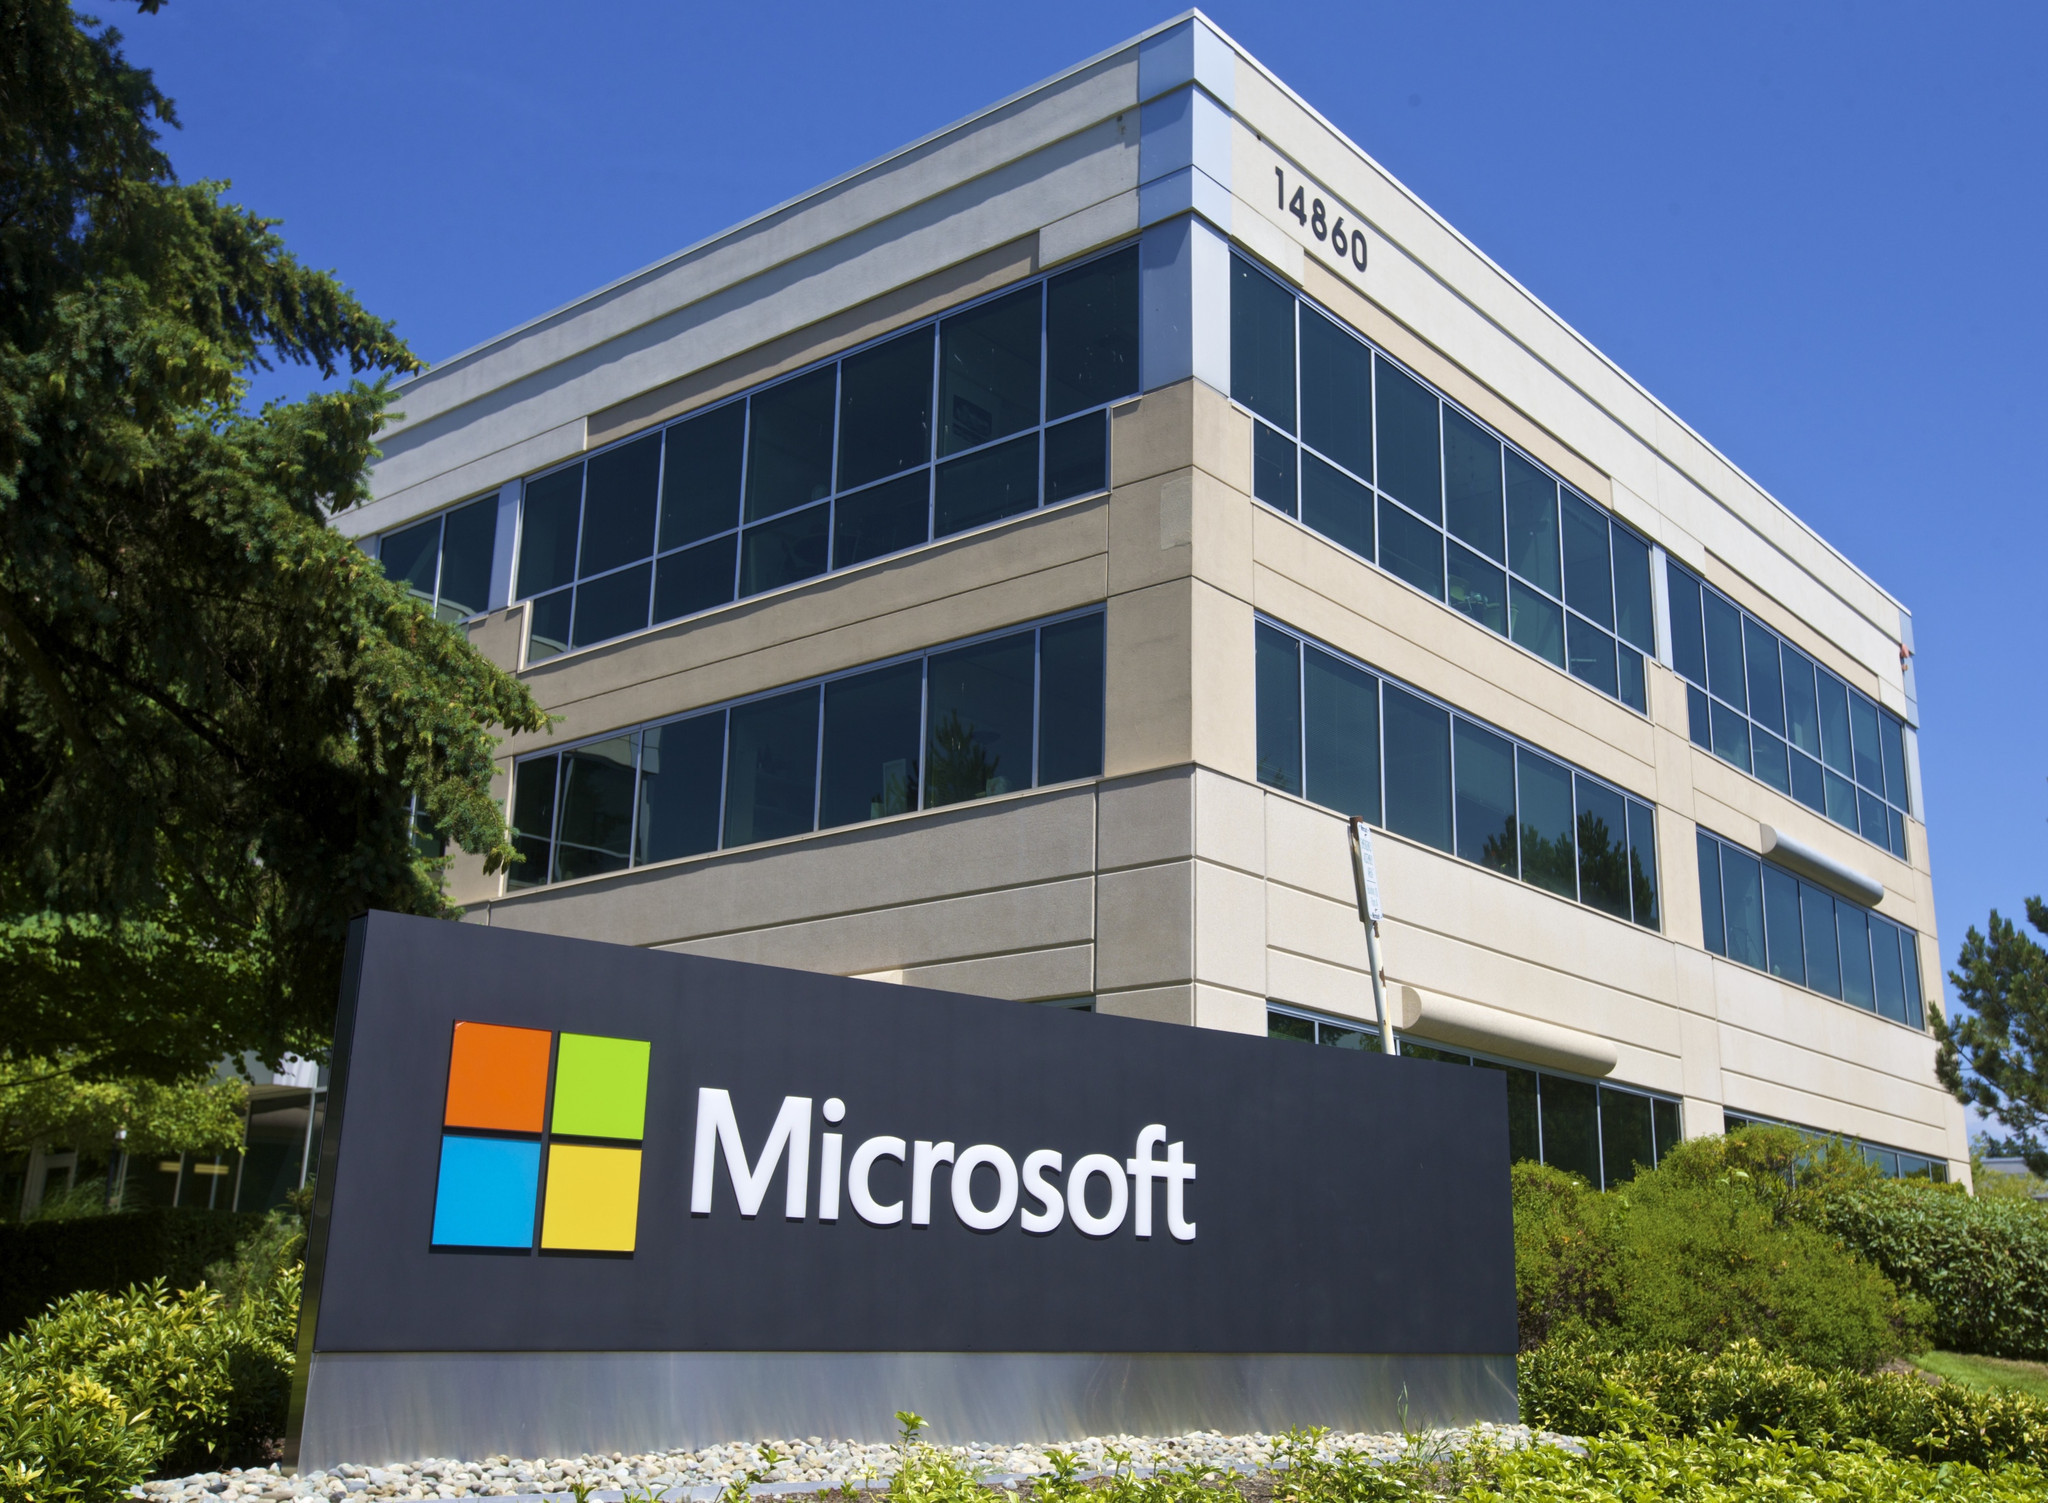 microsoft seattle office. microsoft said to weigh multibillion-dollar headquarters revamp - chicago tribune seattle office s